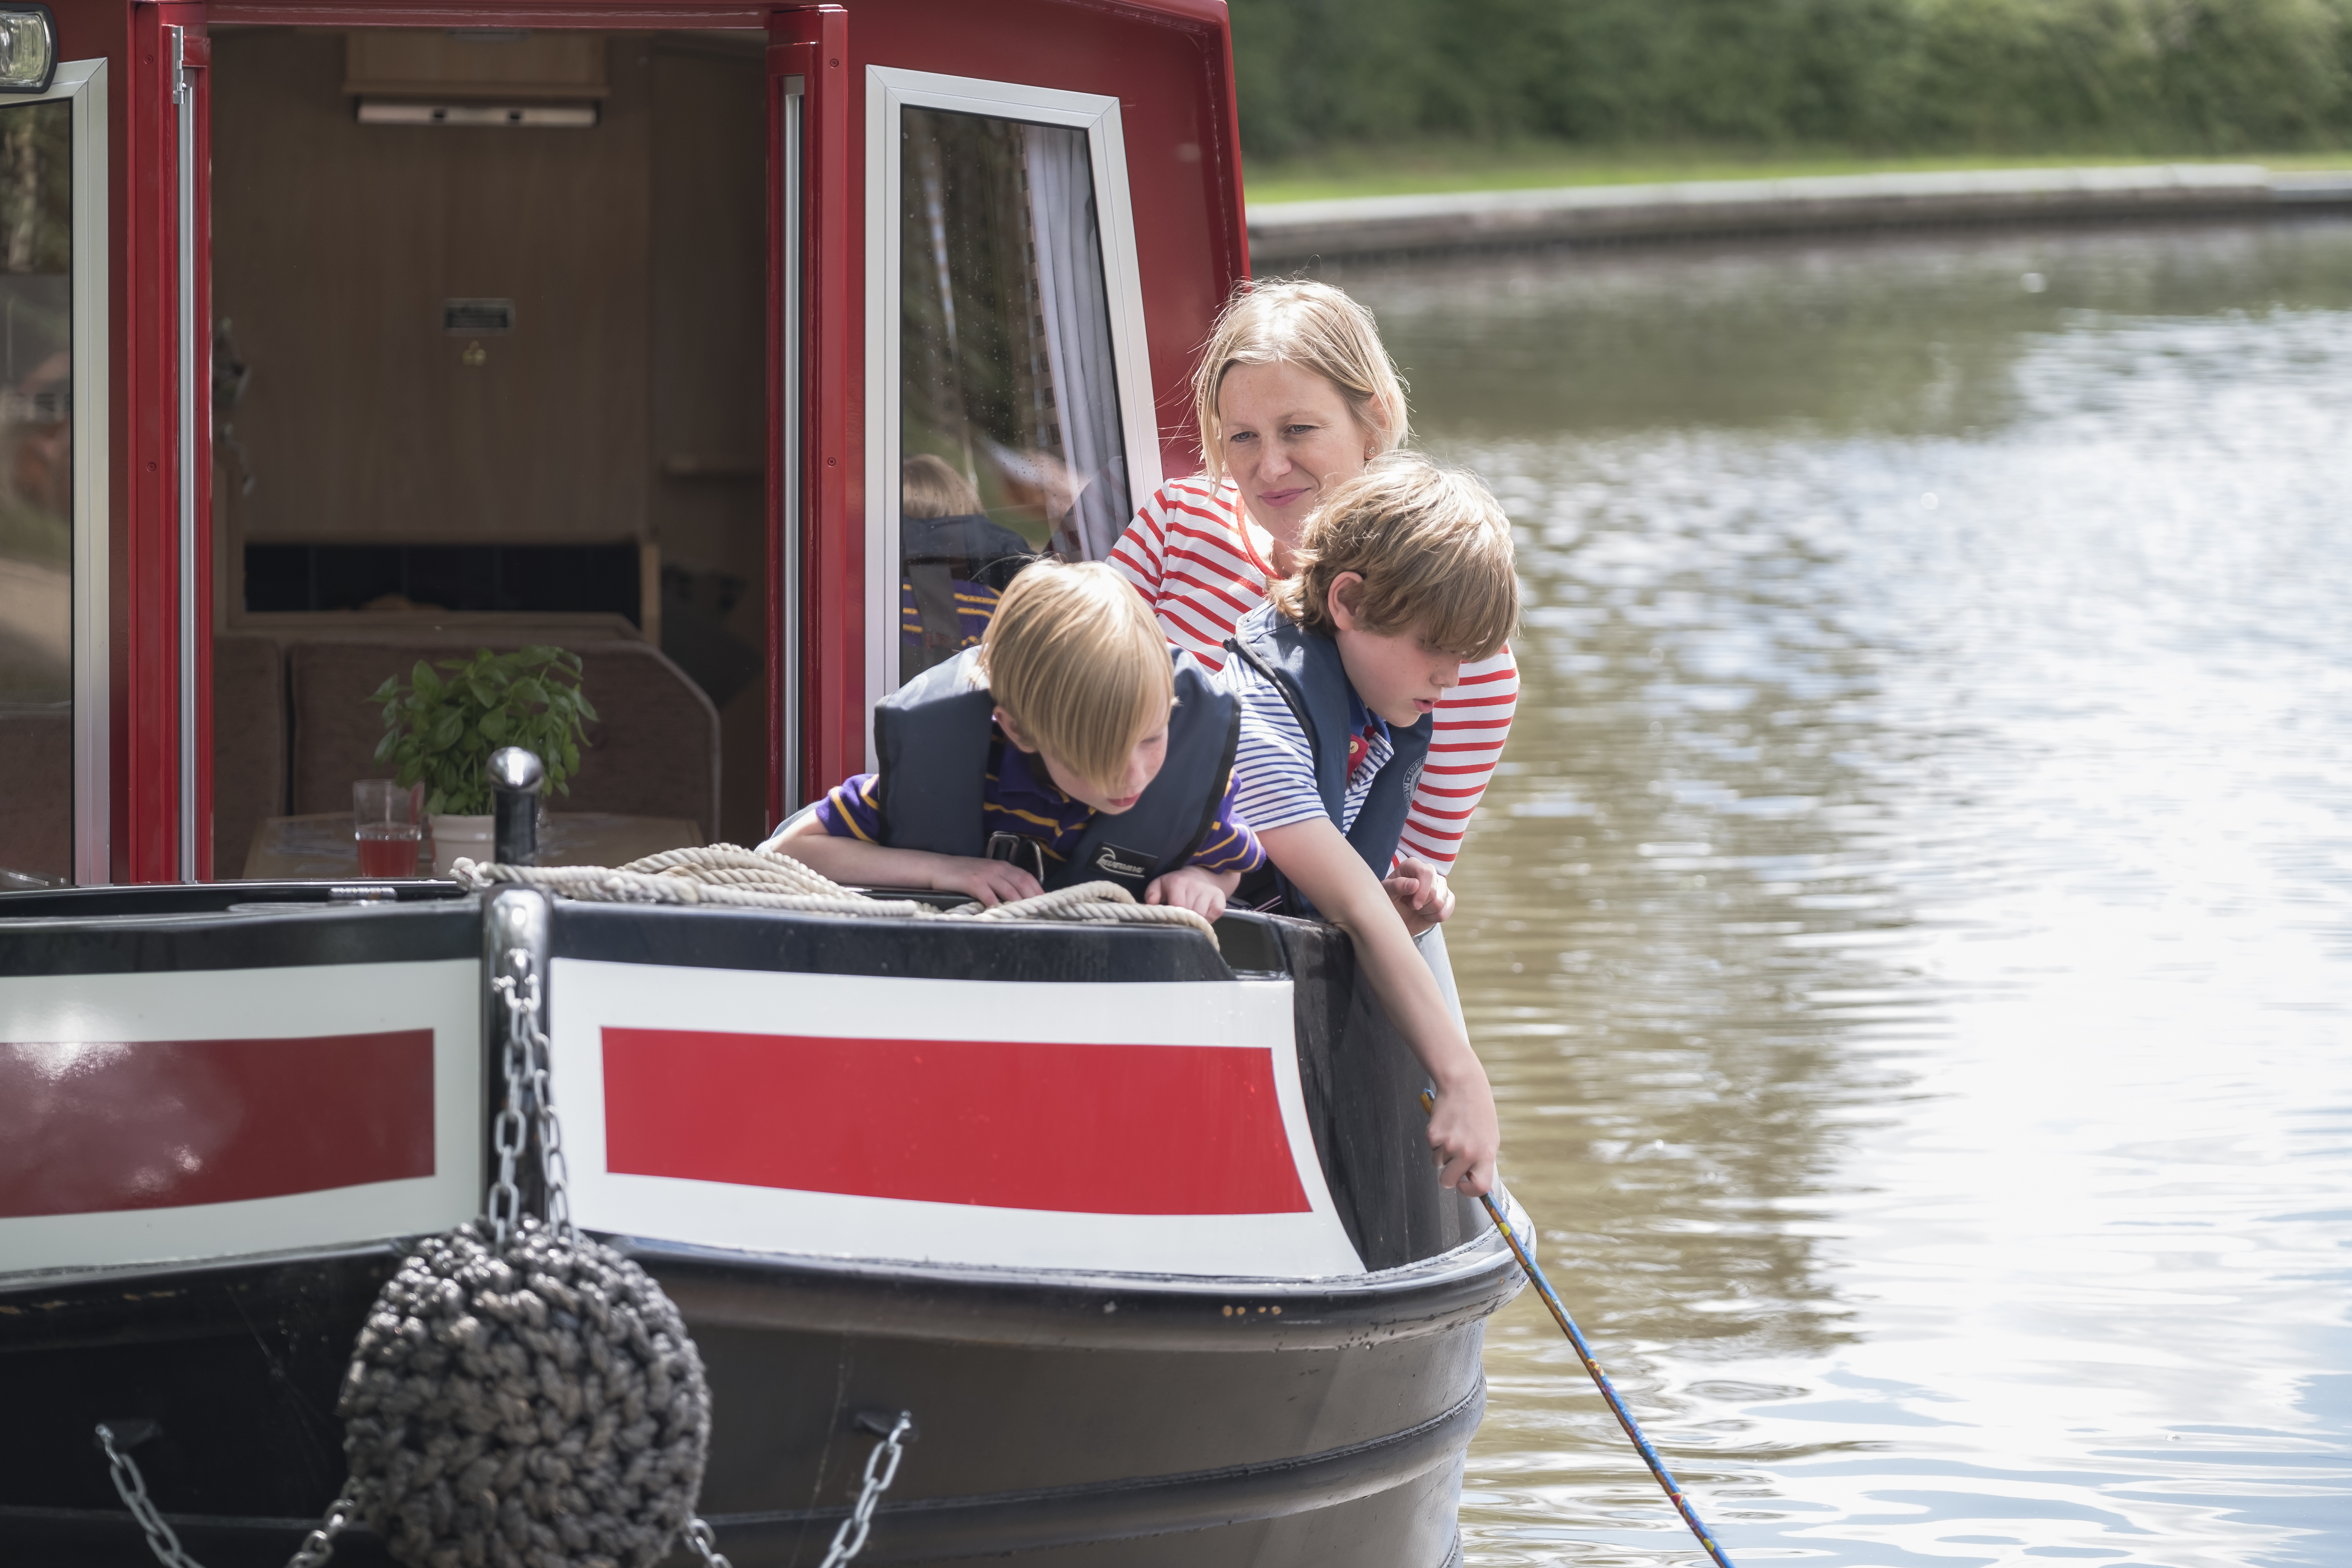 Rugby Base (ABC Boat Hire)